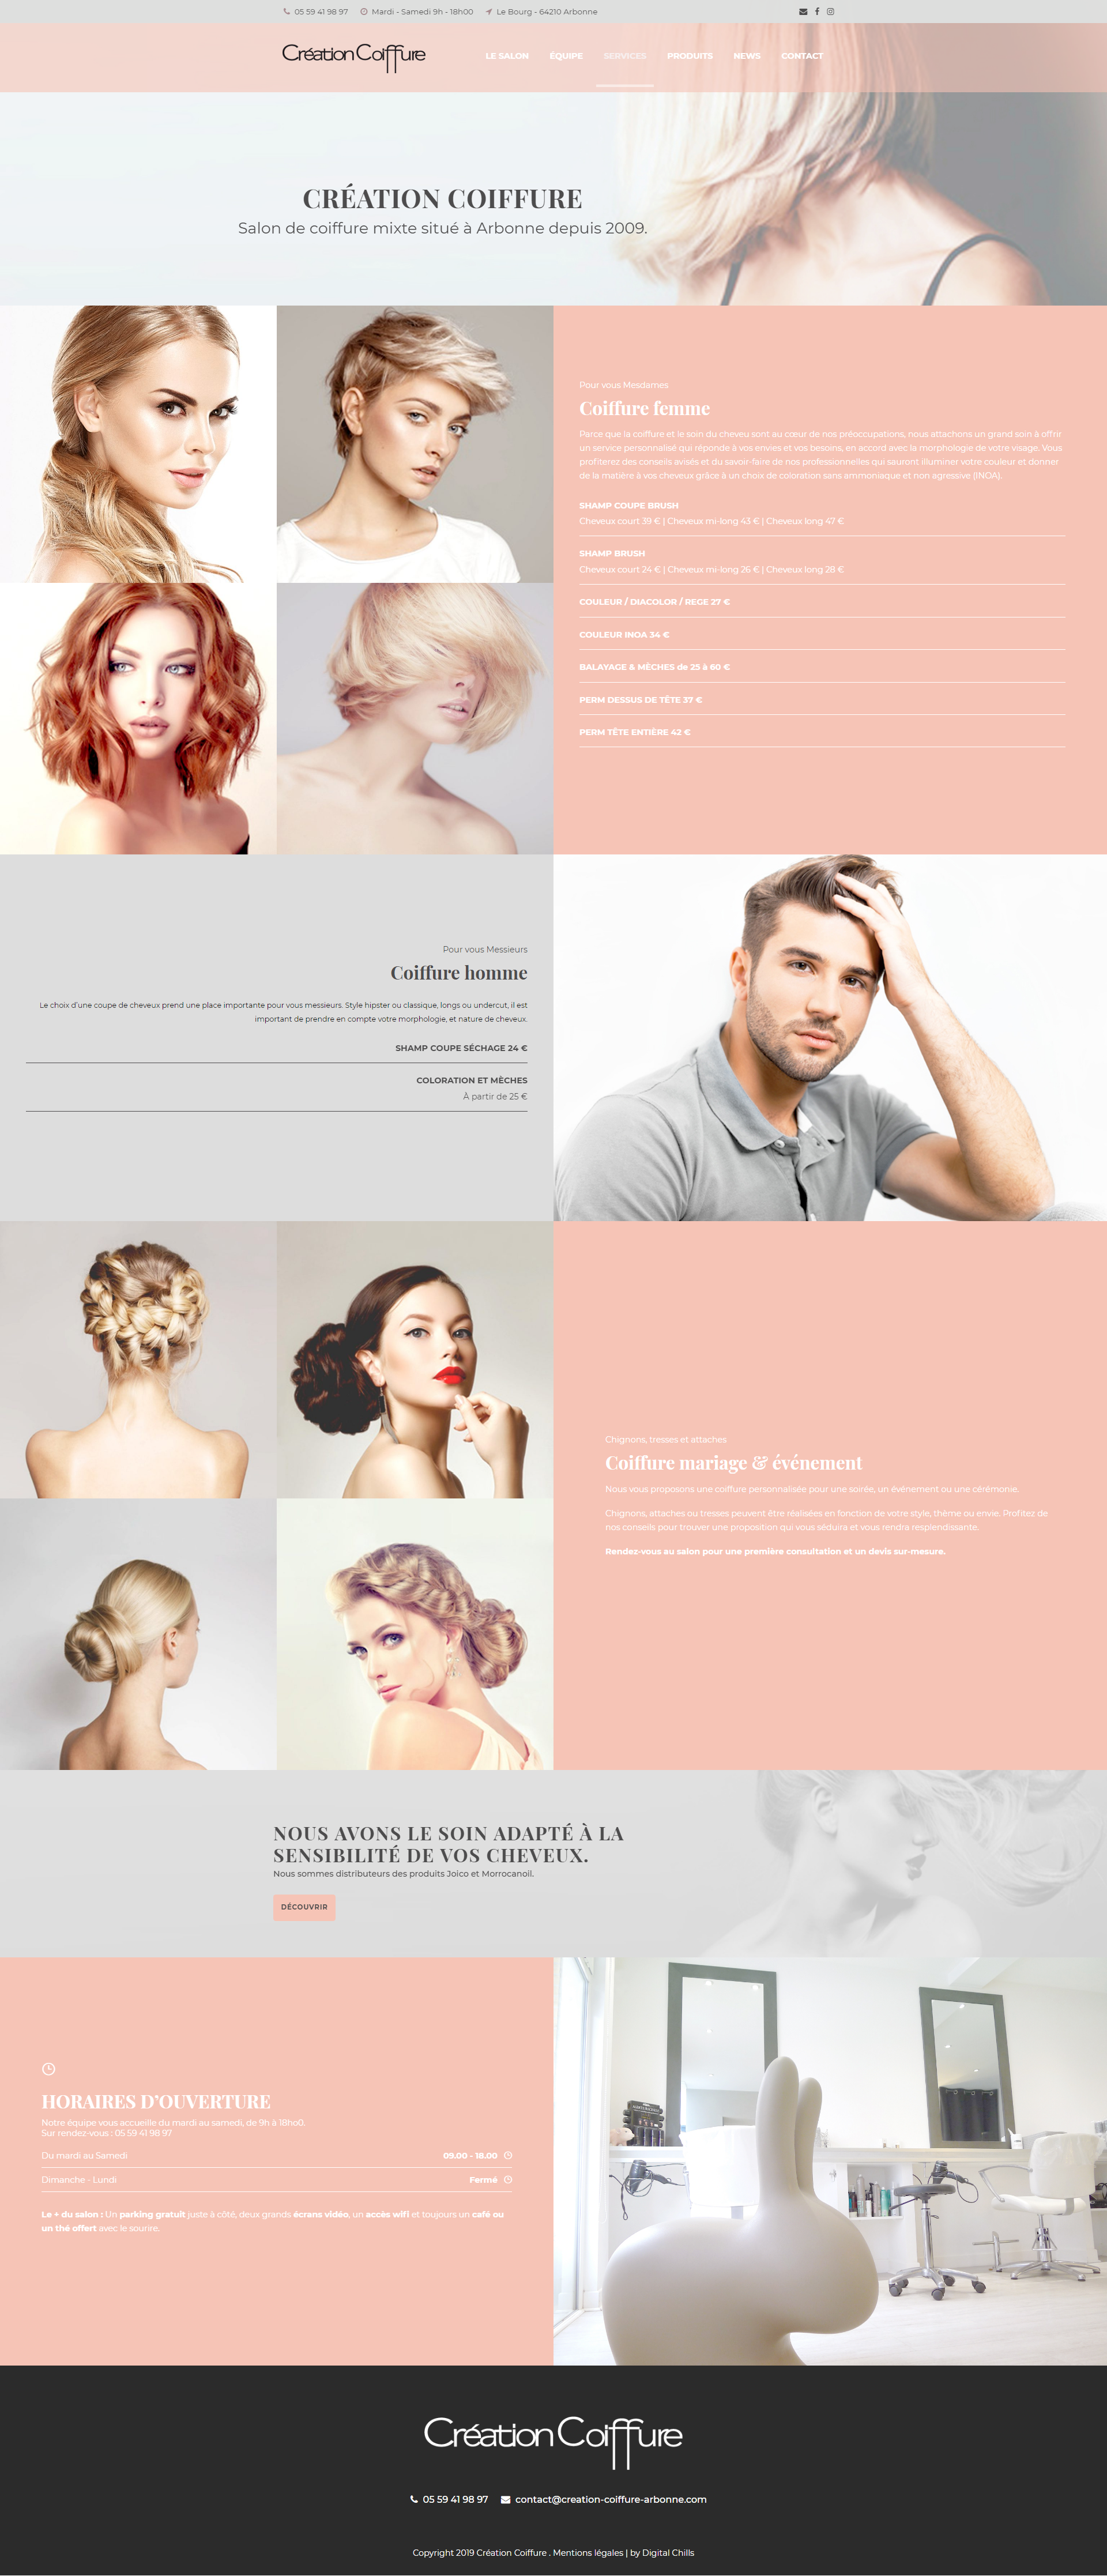 Portfolio Création Coiffure | DIGITAL CHILLS Diseño & Marketing Digital